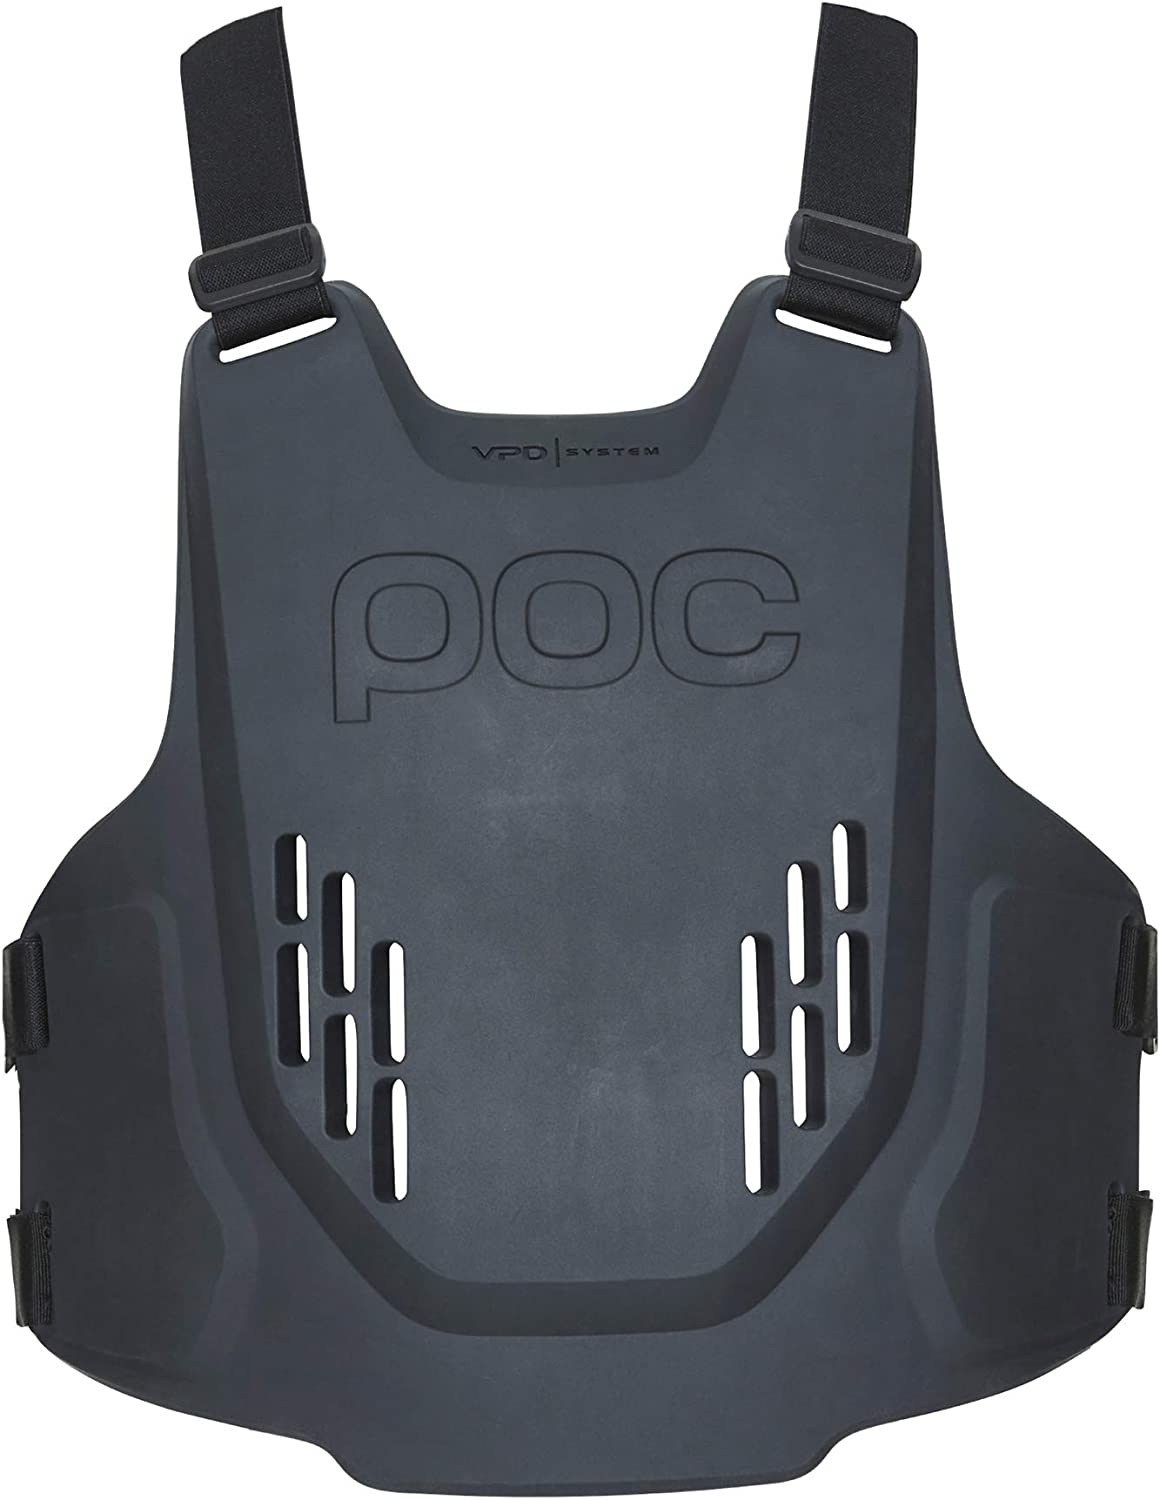 POC, VPD System Chest, Mountain Biking and Skiing Armor for Men and Women